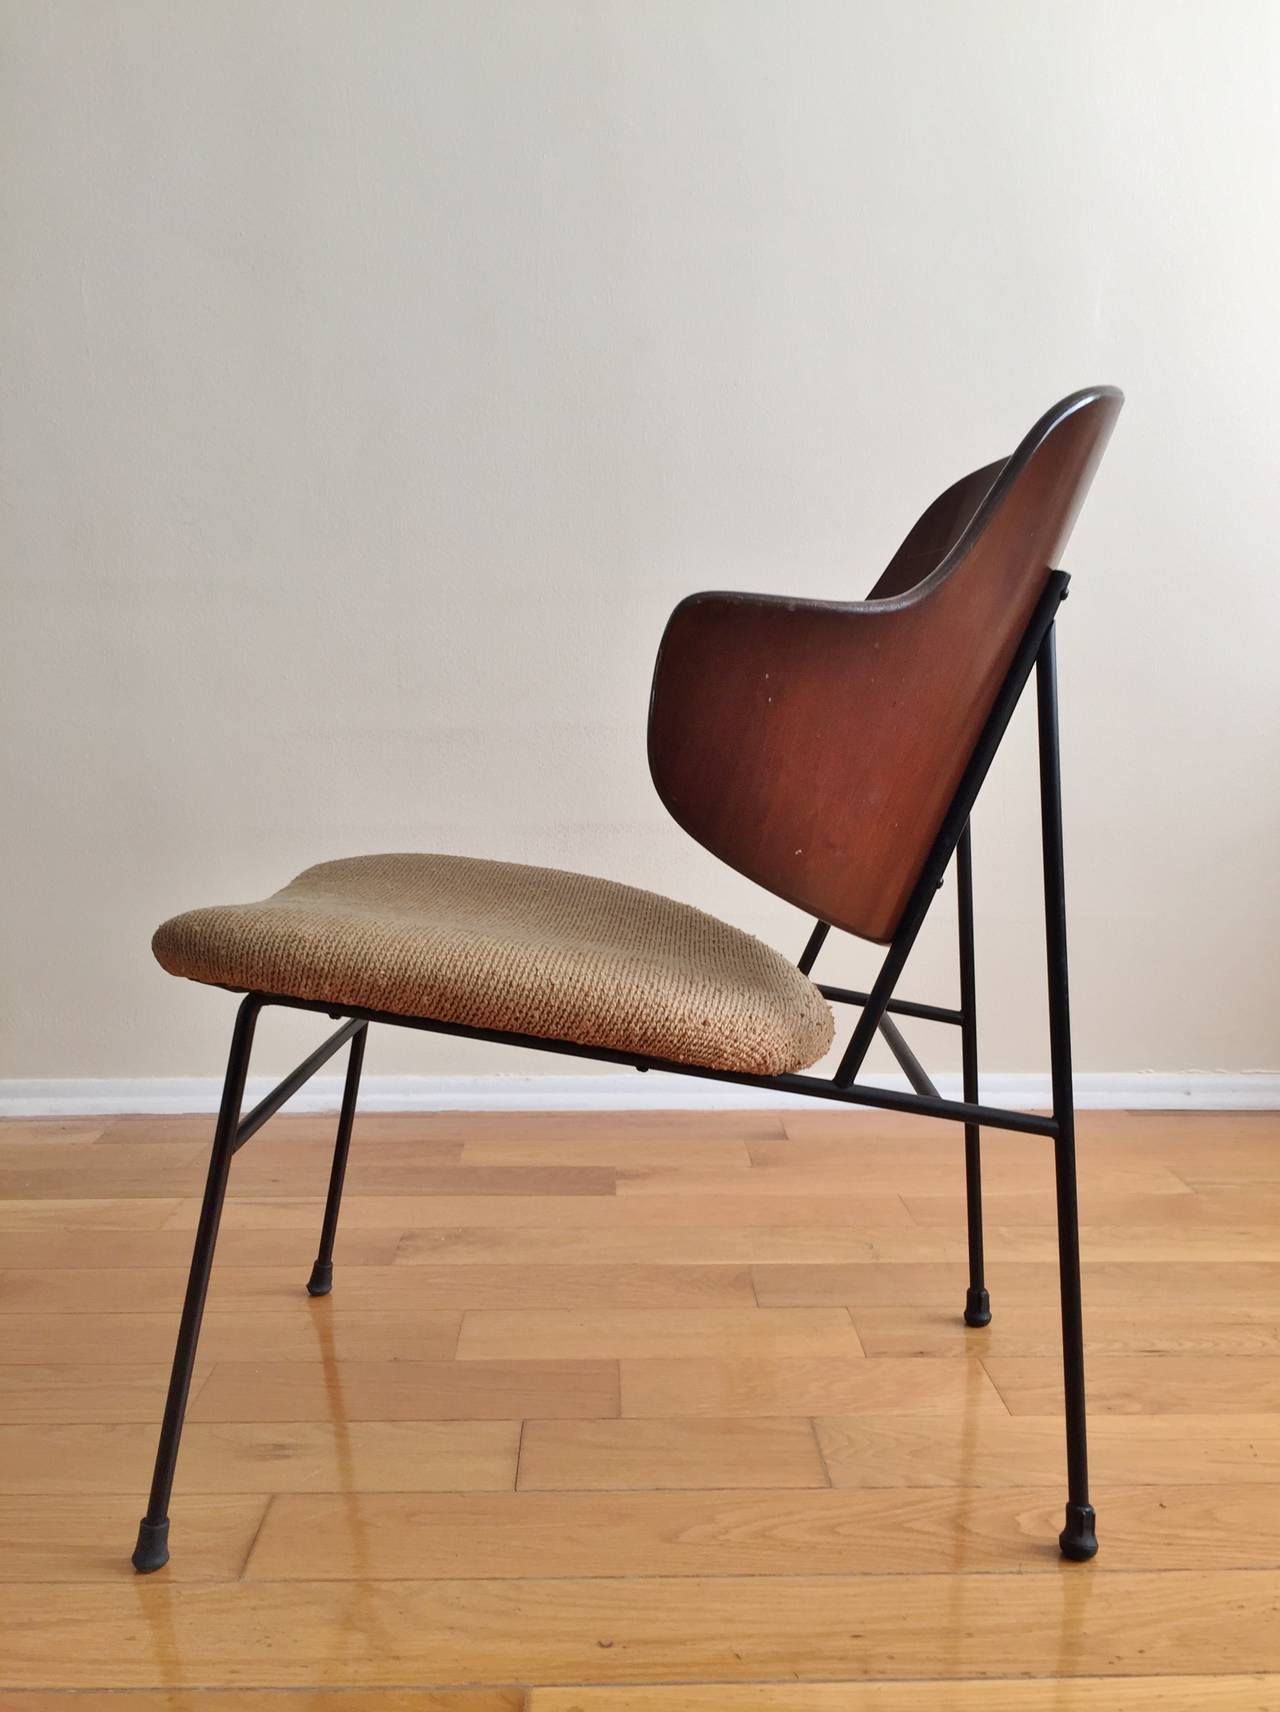 This sculptural pair of lounge chairs by ib kofod larsen is no longer - Ib Kofod Larsen Penguin Lounge Chair For Christensen And Larsen 2